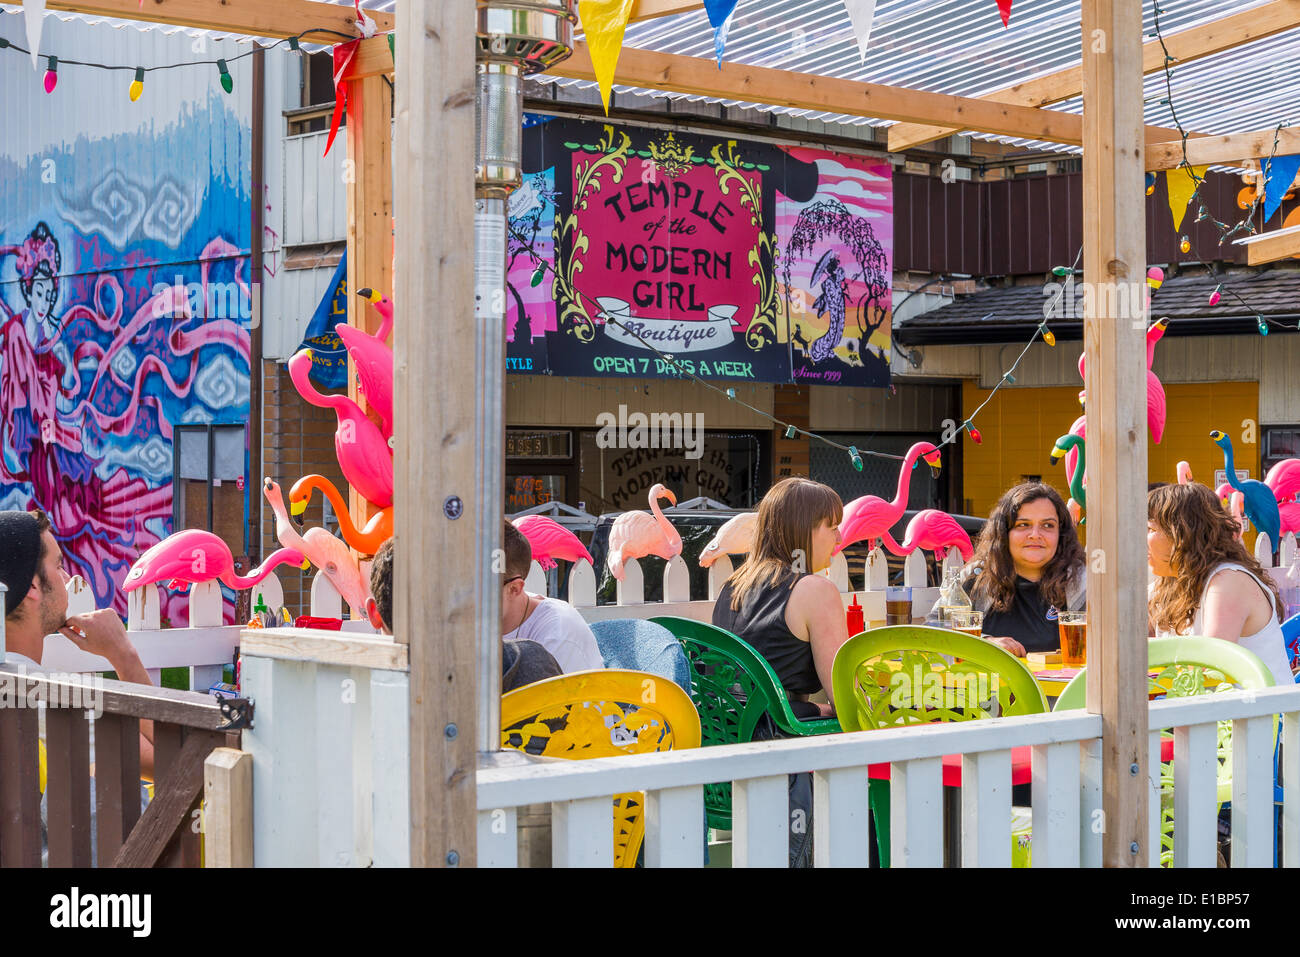 Outdoor cafe patio, Main Street, Vancouver, British Columbia, Canada - Stock Image